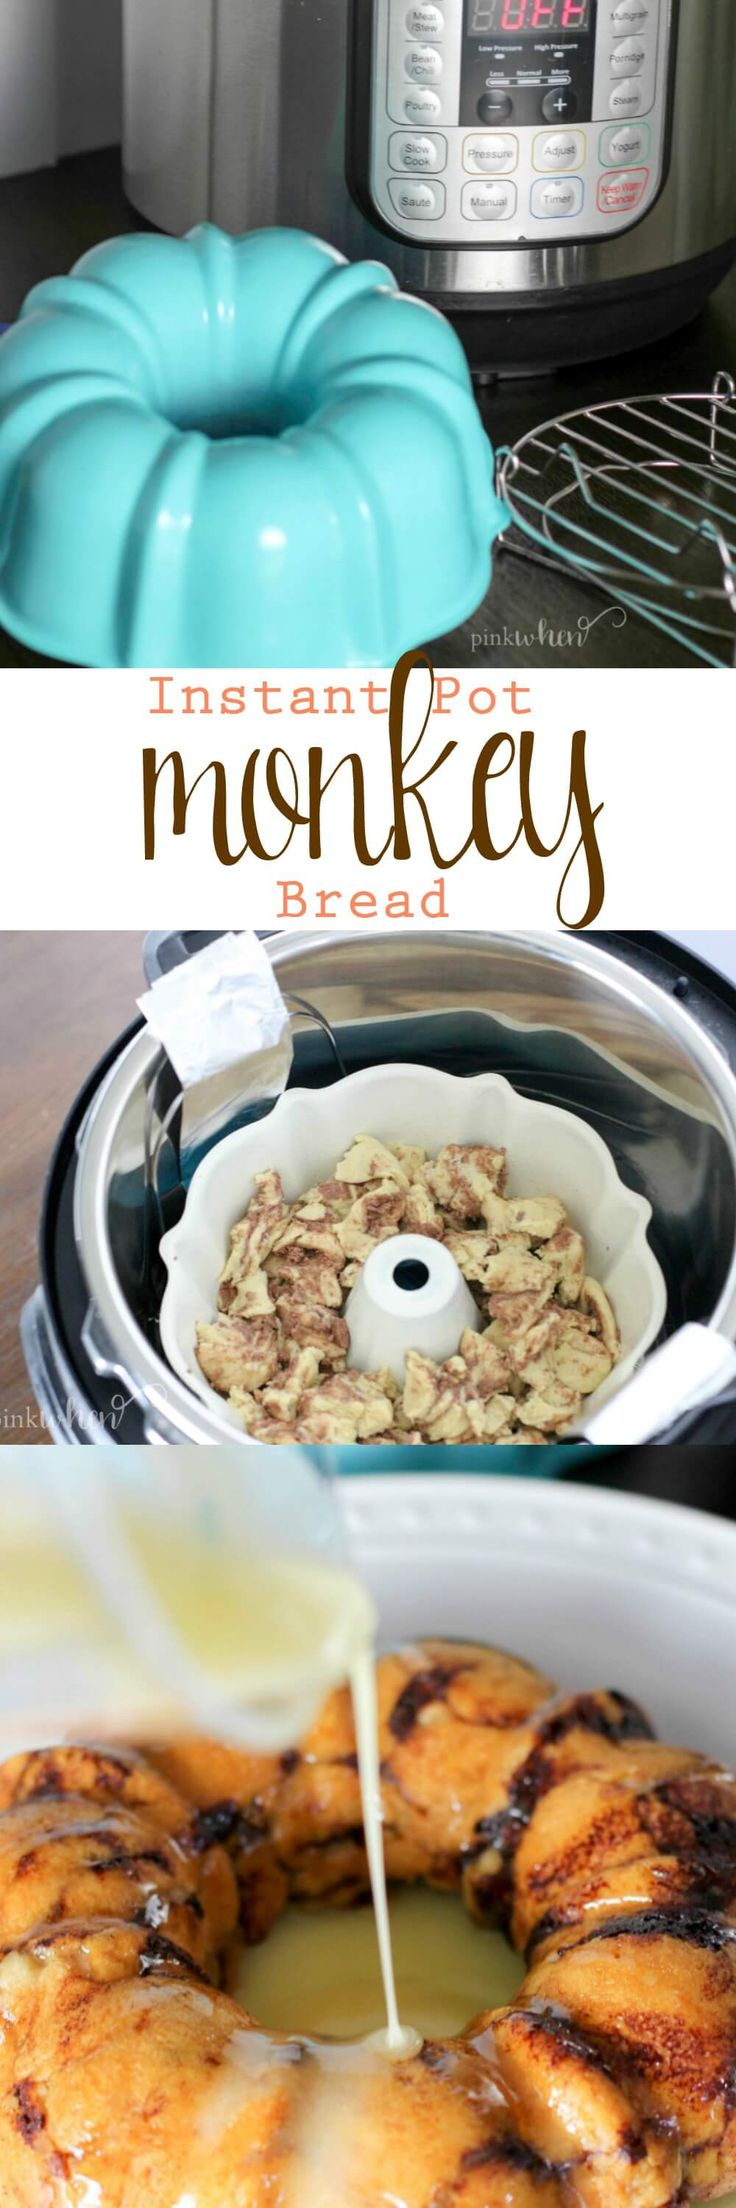 This easy Instant Pot Monkey Bread recipe is one of our favorite lazy day snacks and a perfect recipe if you are new to pressure cooking. (Bake Goods Crock Pot)